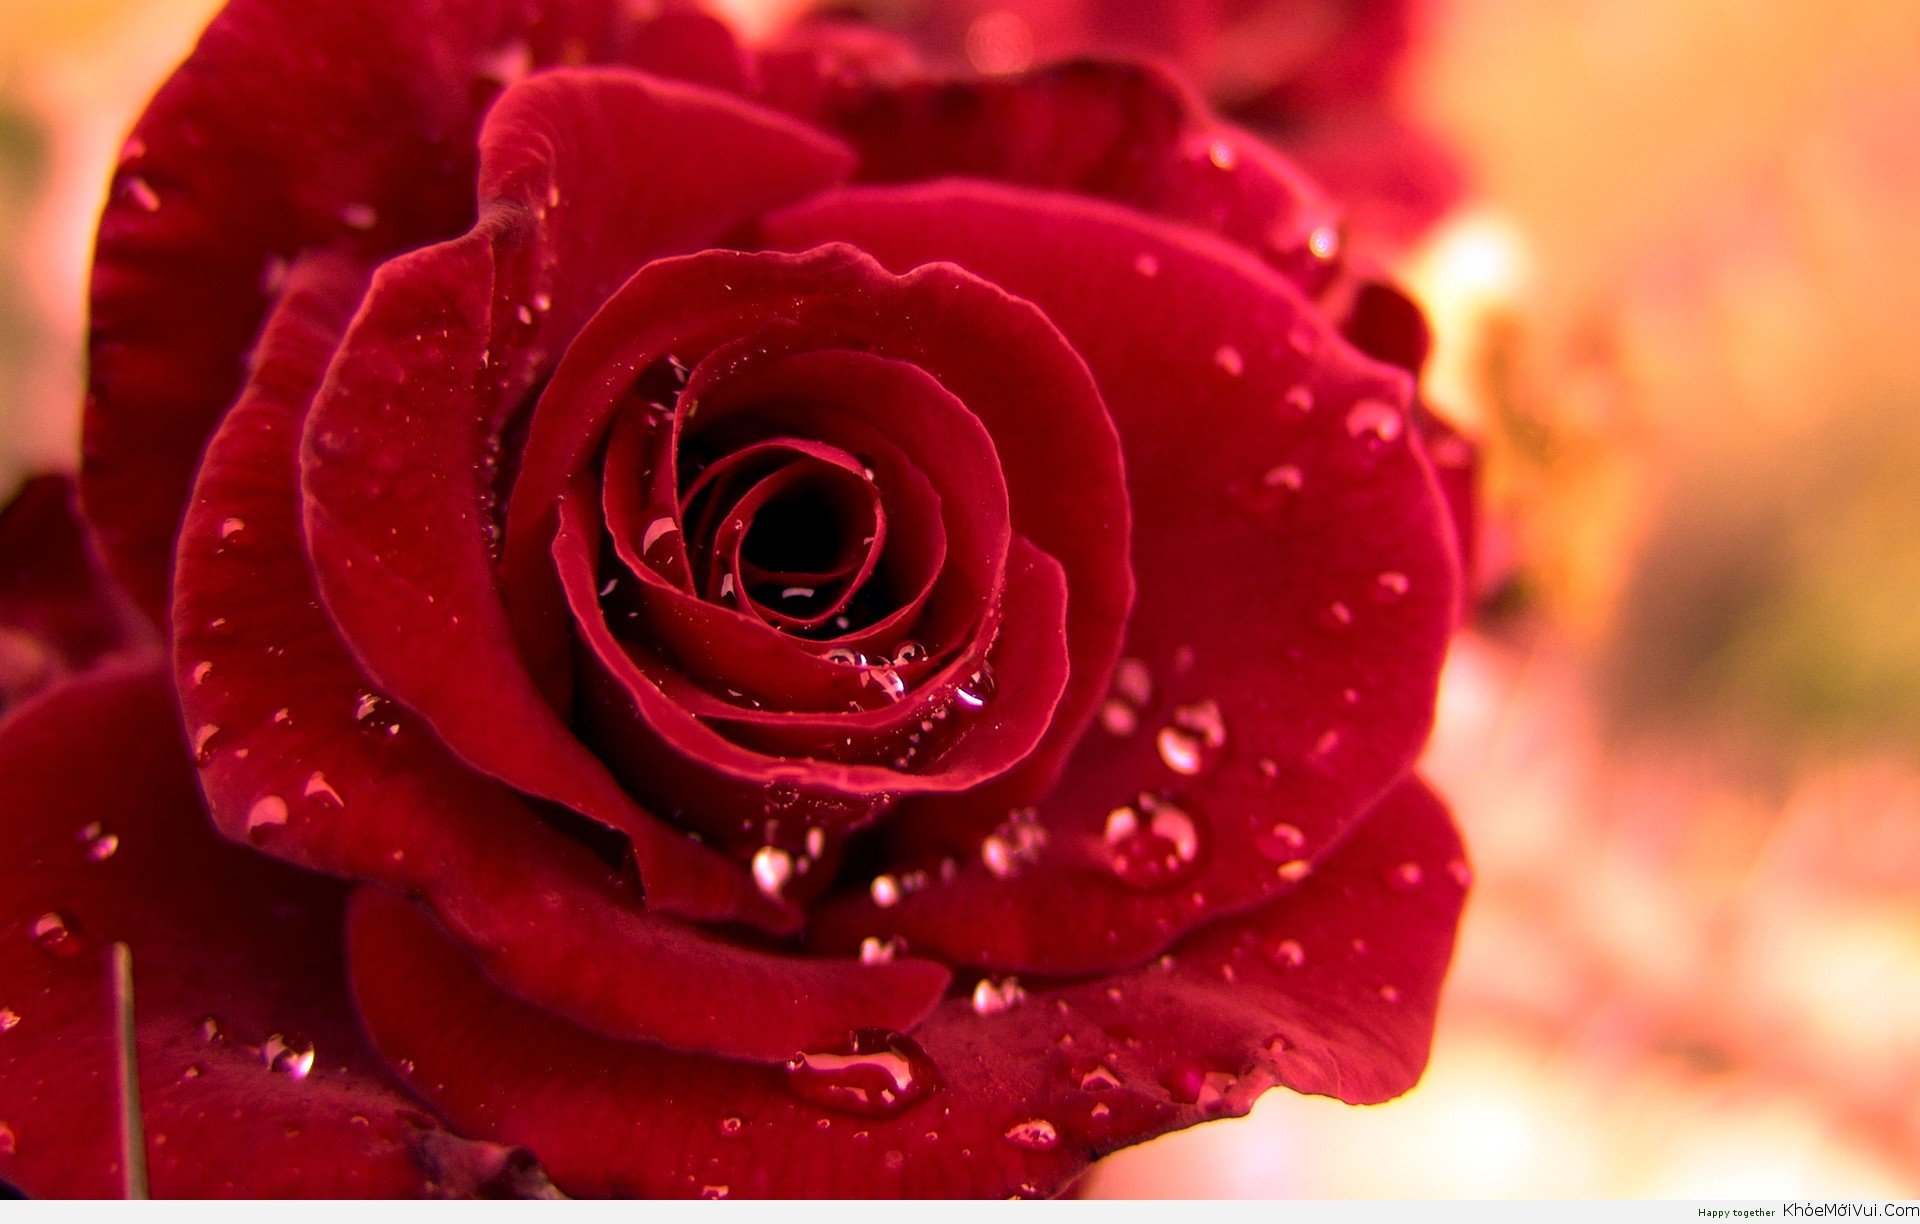 Hd-red-rose-wallpaper-for-rose-day